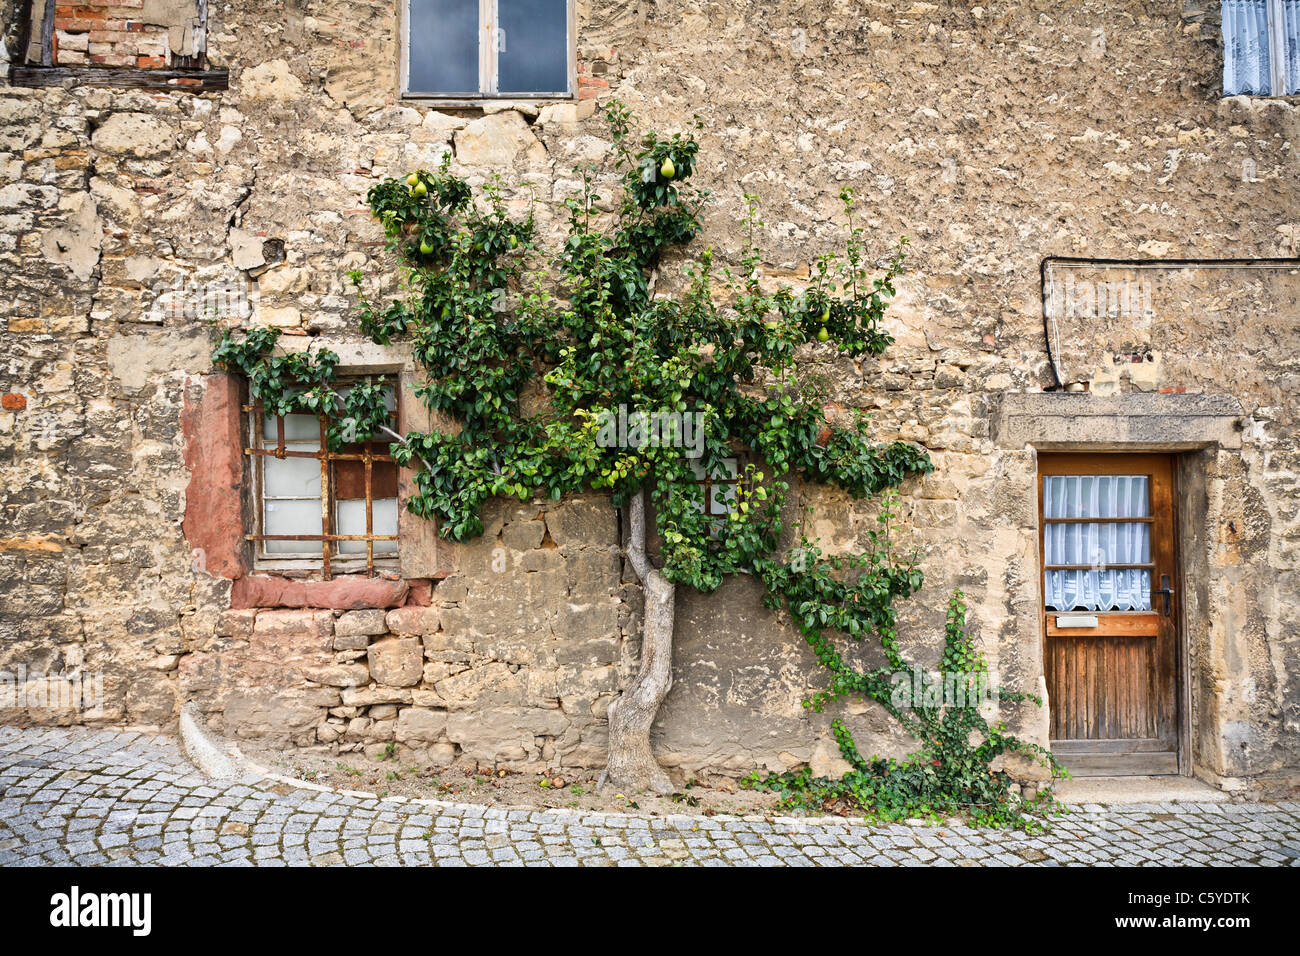 Pear tree growing (and bearing fruit) against an old stone wall - Stock Image